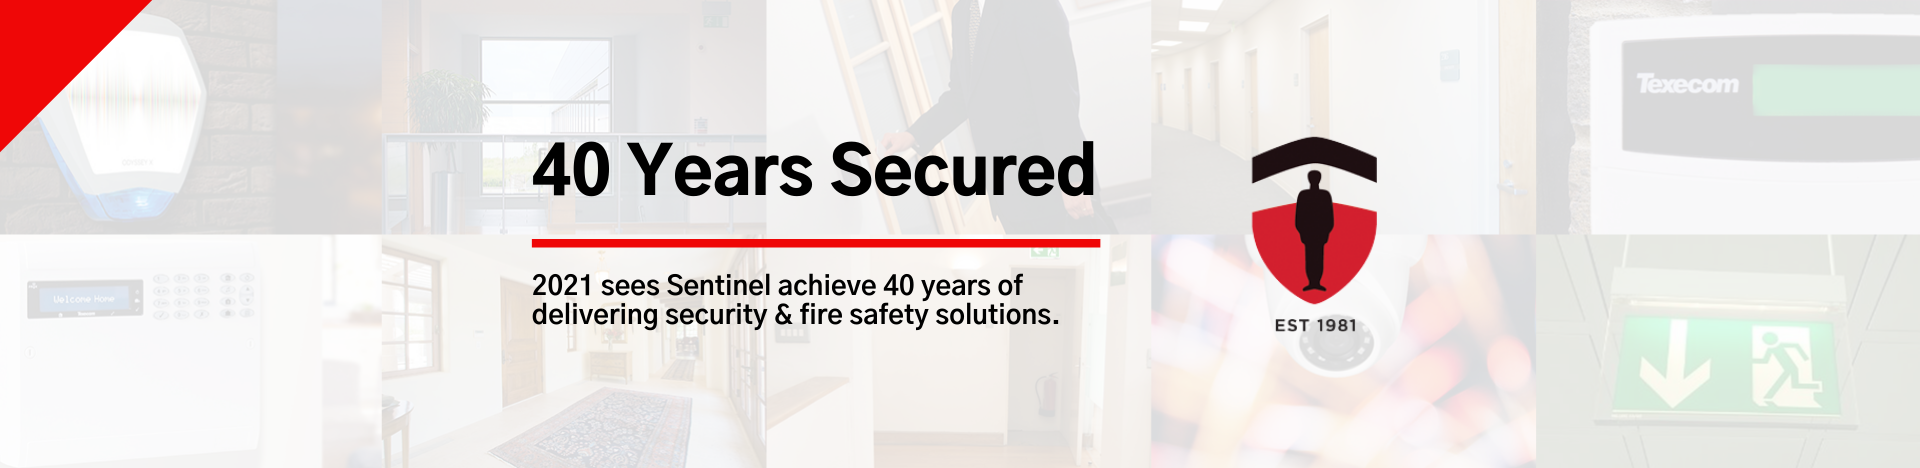 40 Years Secured - 2021 see Sentinel achieve 40 years of delivering security and fire safety solutions